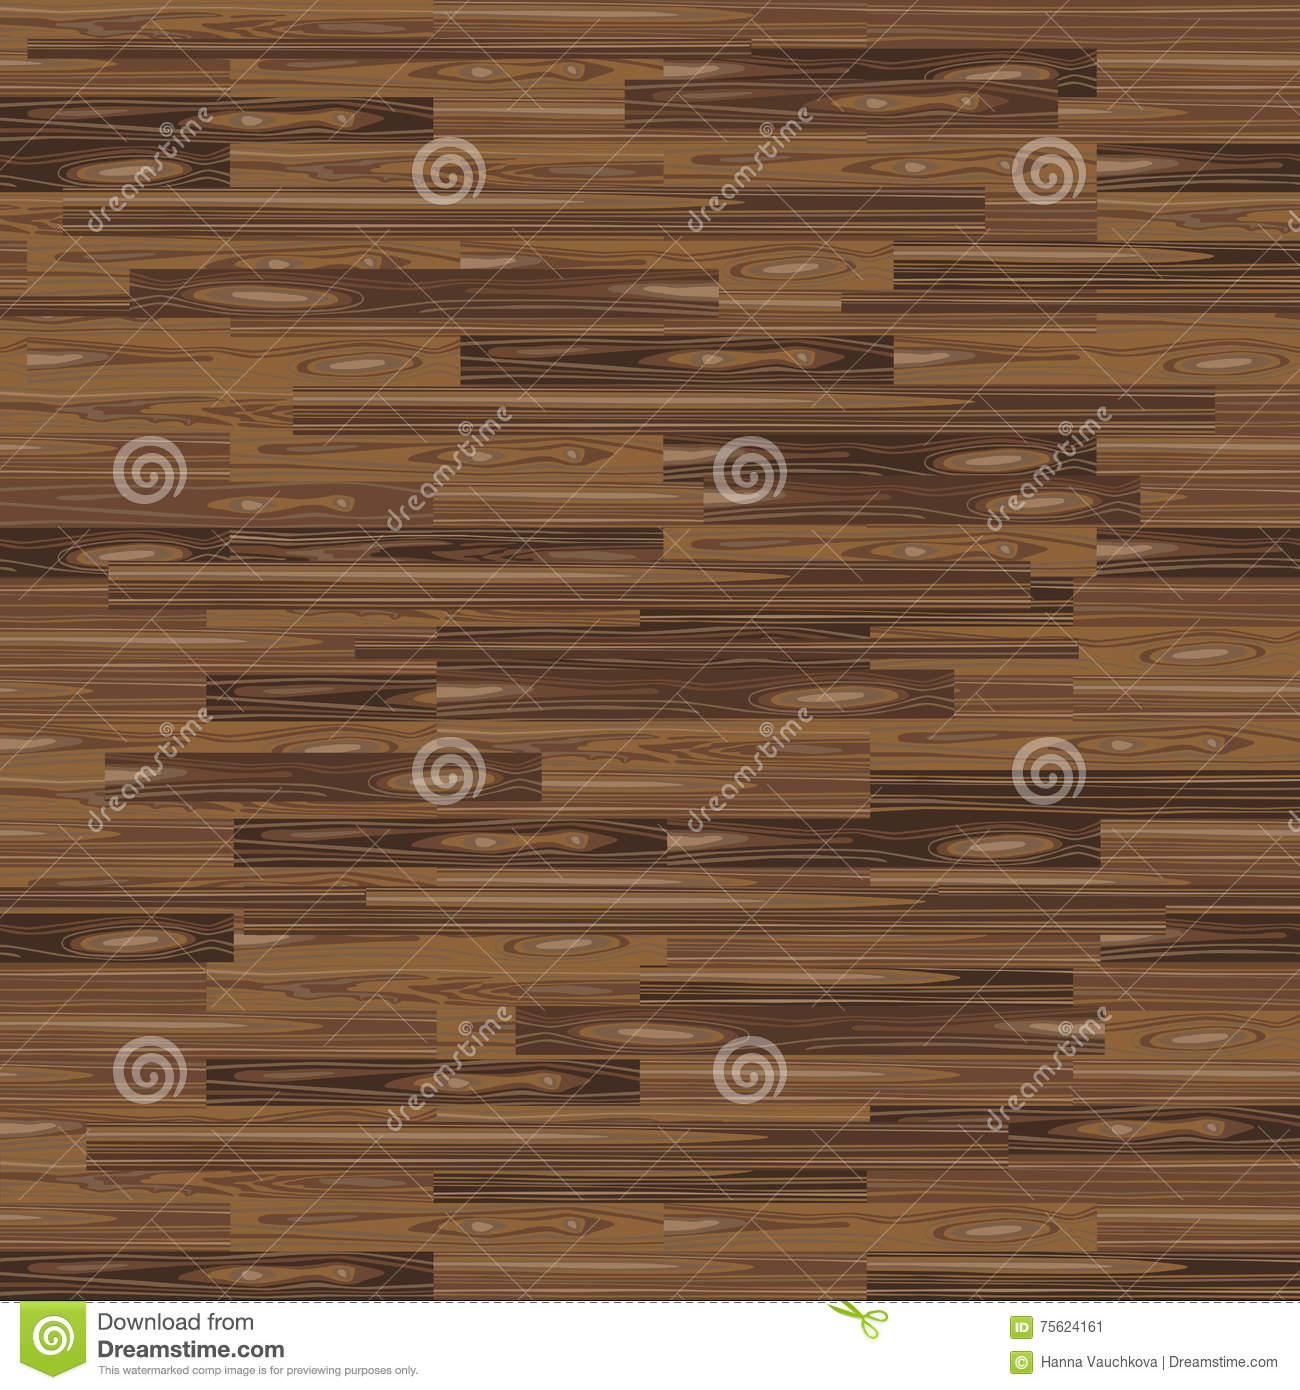 parquet sans couture texture de parquetage fond de plancher mod le en bois de vecteur stratifi. Black Bedroom Furniture Sets. Home Design Ideas